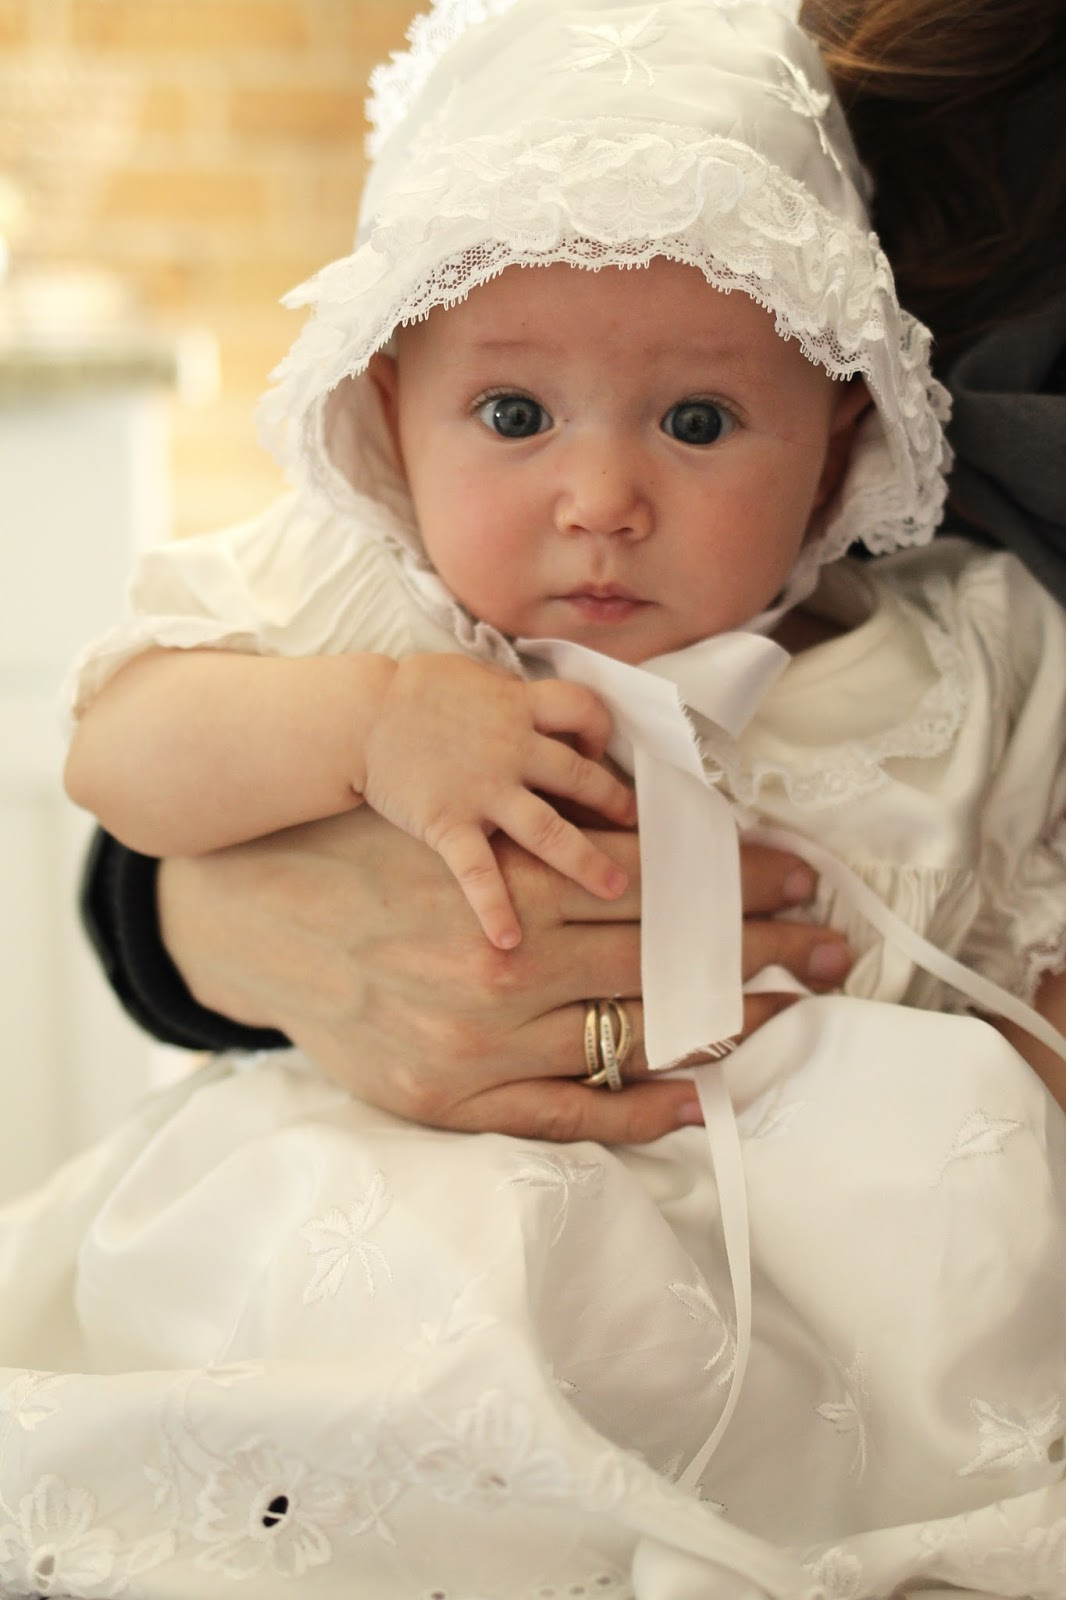 baptism, gown, dress, baby girl